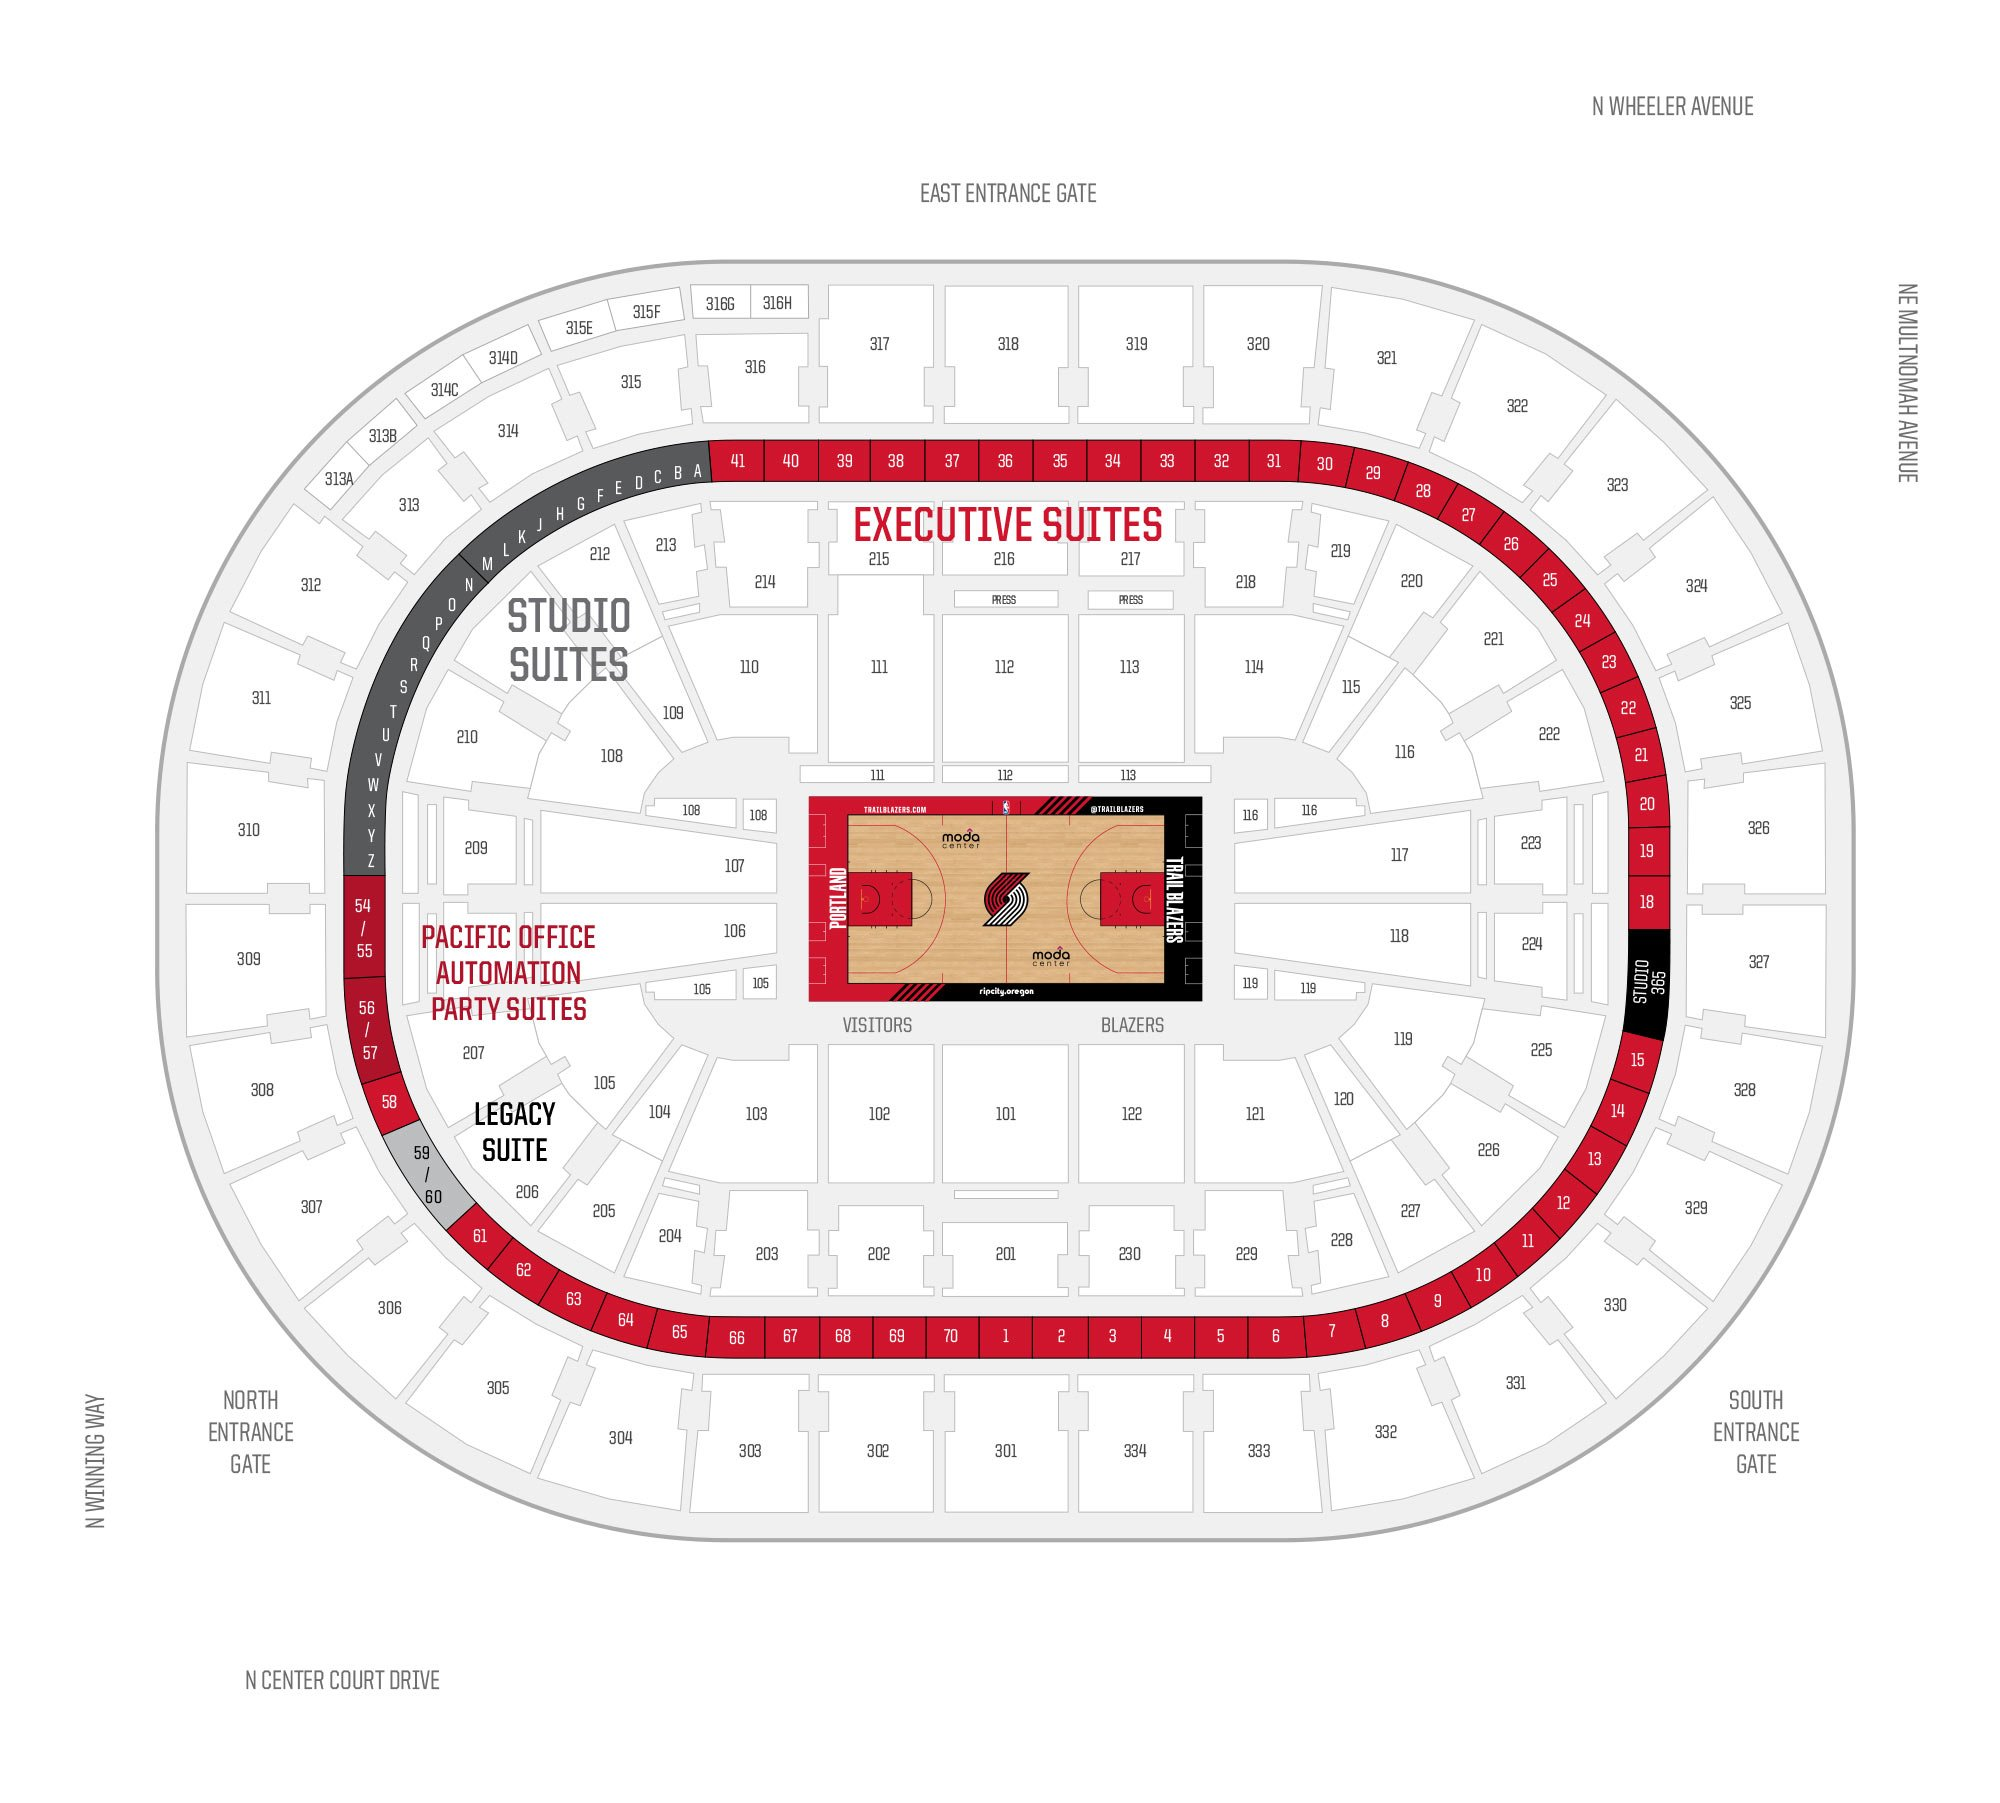 Moda Center / Portland Trail Blazers Suite Map and Seating Chart